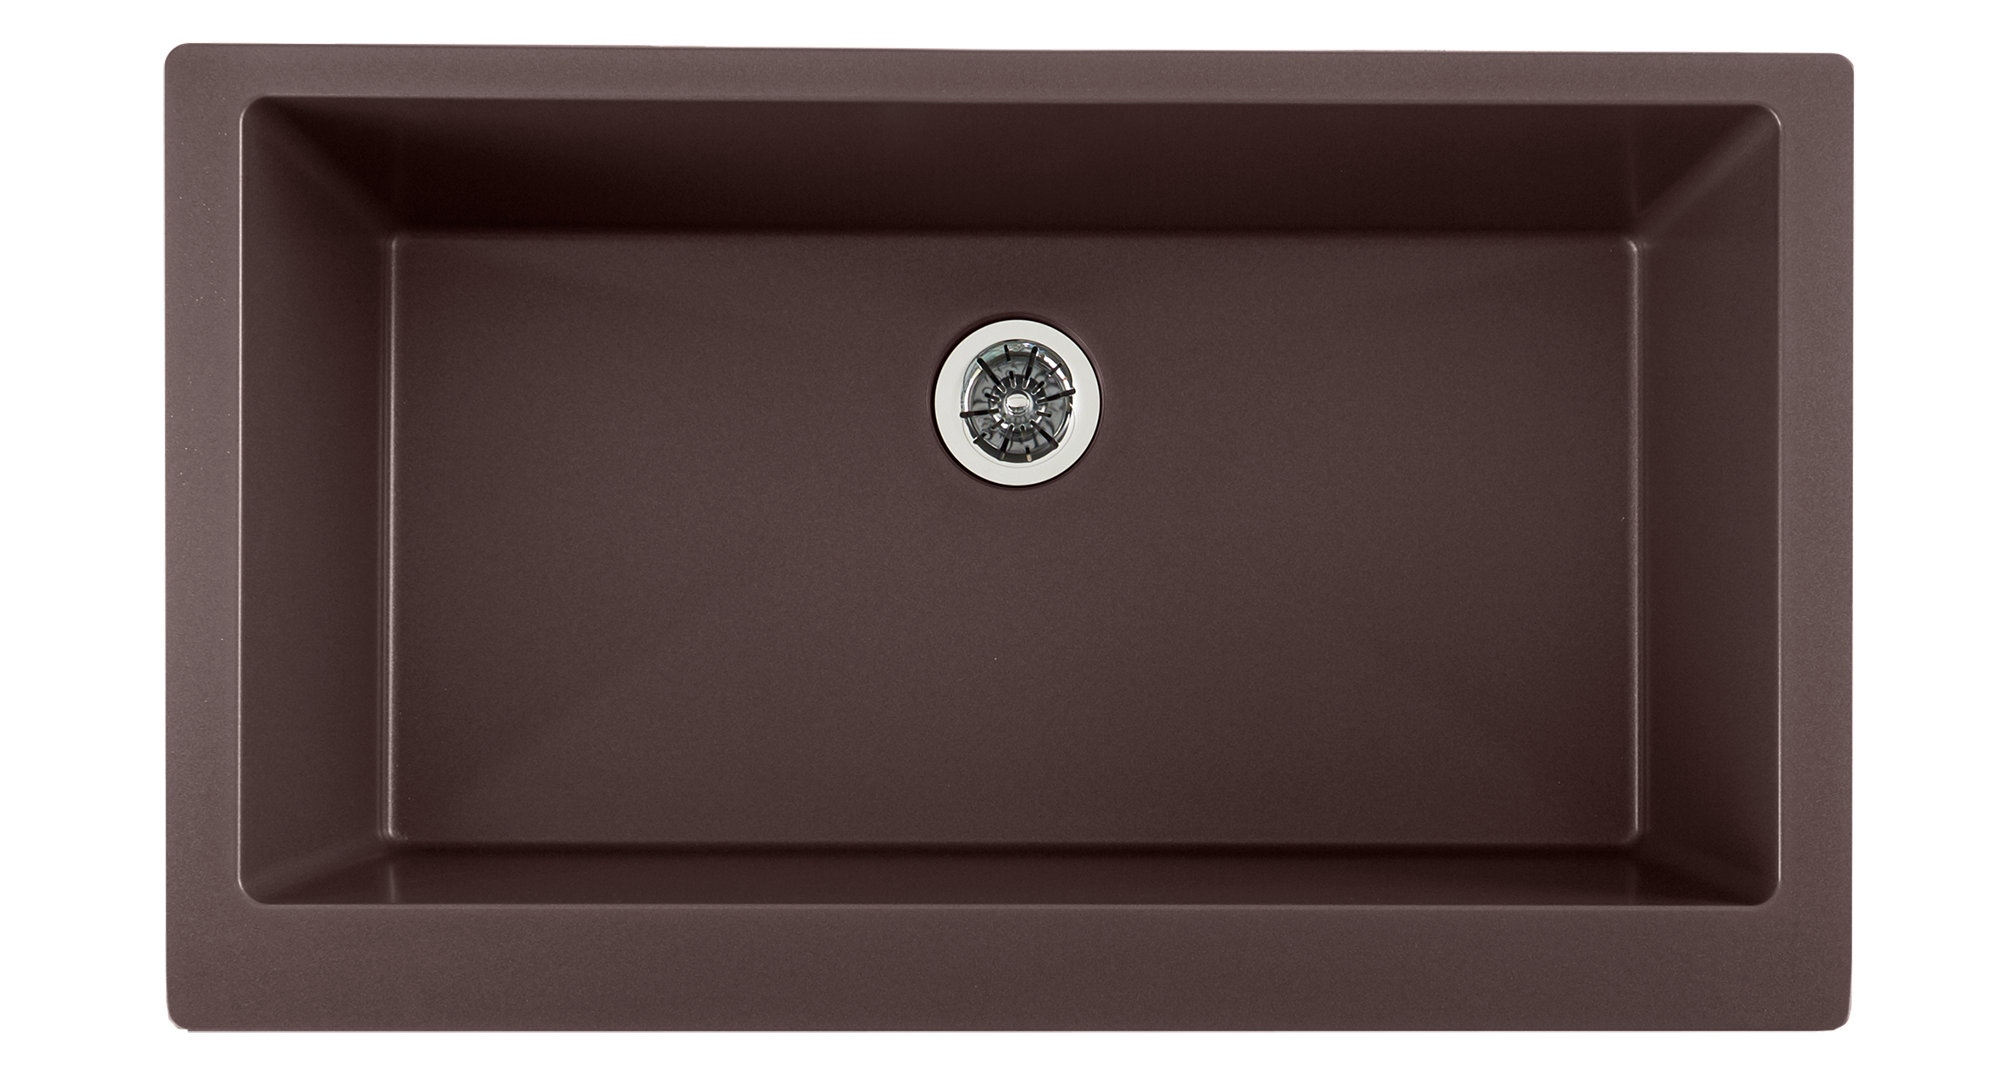 Elkay Quartz Luxe 35-7/8in x 20-15/16in x 9in Single Bowl Farmhouse Sink with Perfect Drain Chestnut